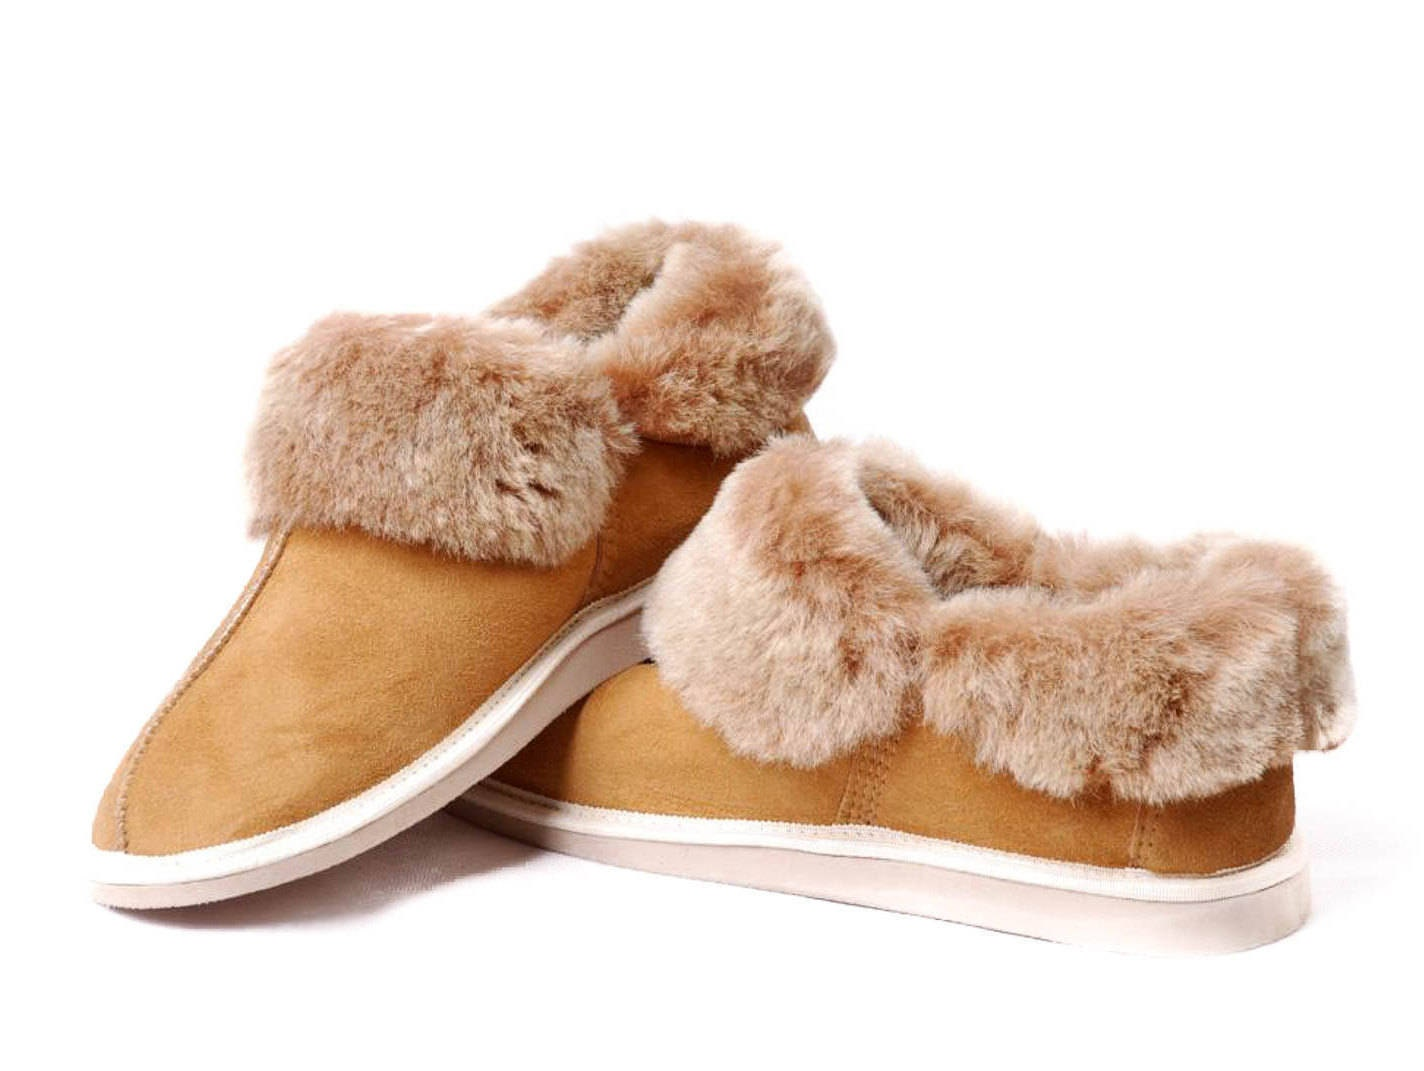 a534f0bdc61 Women s Sheepskin Slippers! High quality handmade fur slippers!  Ugg-inspired boots. gallery photo ...